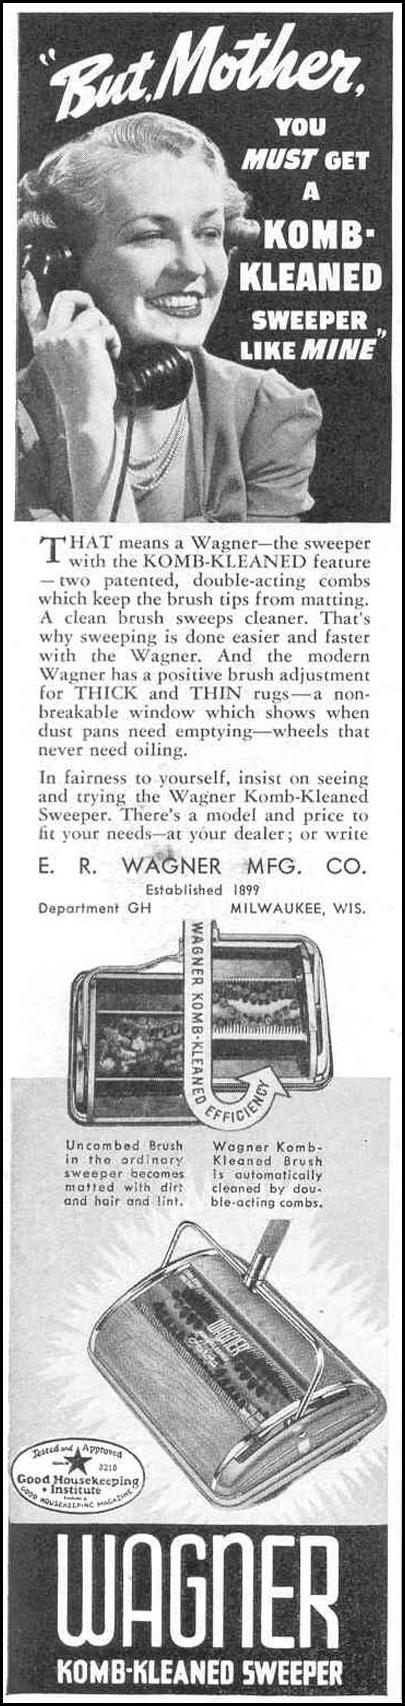 WAGNER KOMB-KLEENED SWEEPER